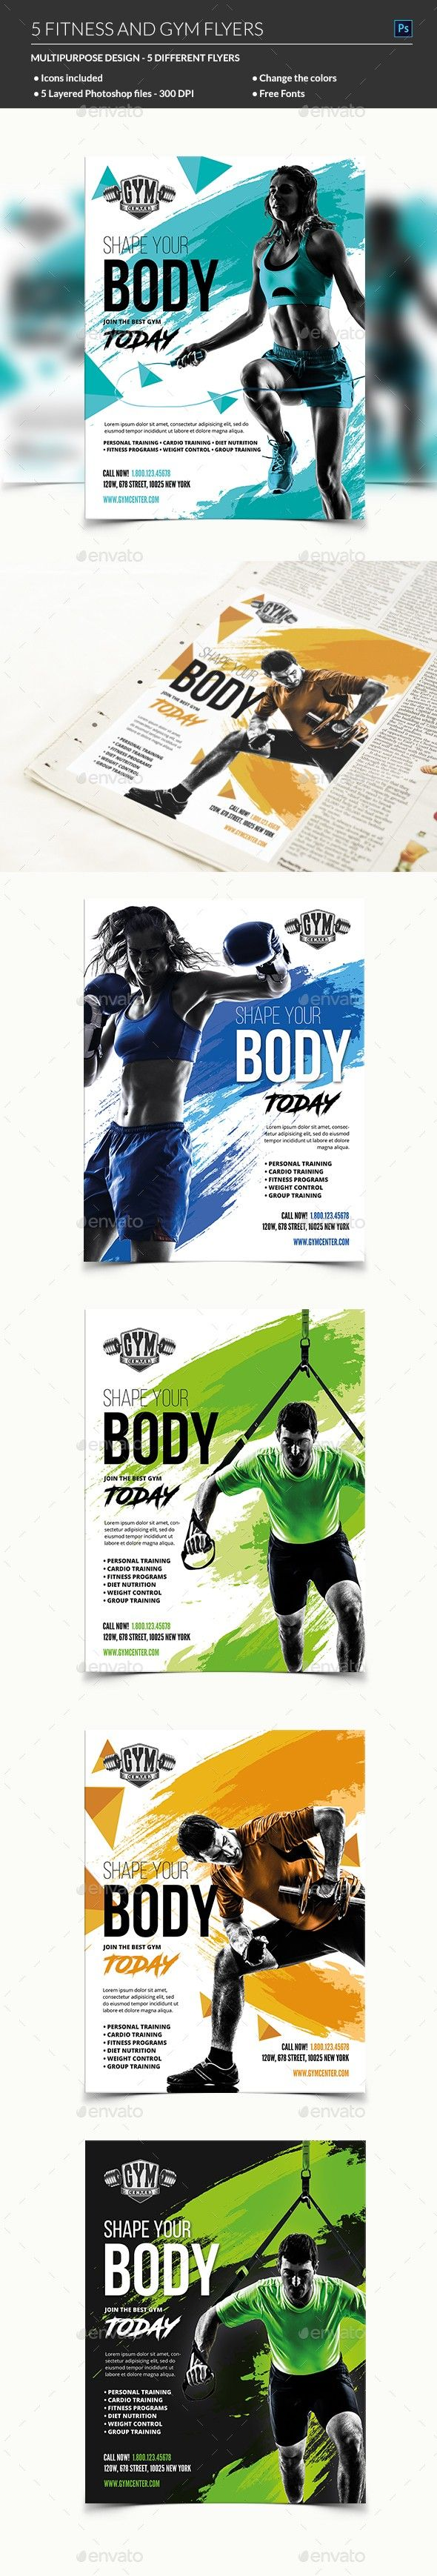 Healthcare-Advertising-ad-advertising-body-bodybuilding-boxing-crossfit-diet Healthcare Advertising : ad, advertising, body, bodybuilding, boxing, crossfit, diet, energy, fit, fitnes...